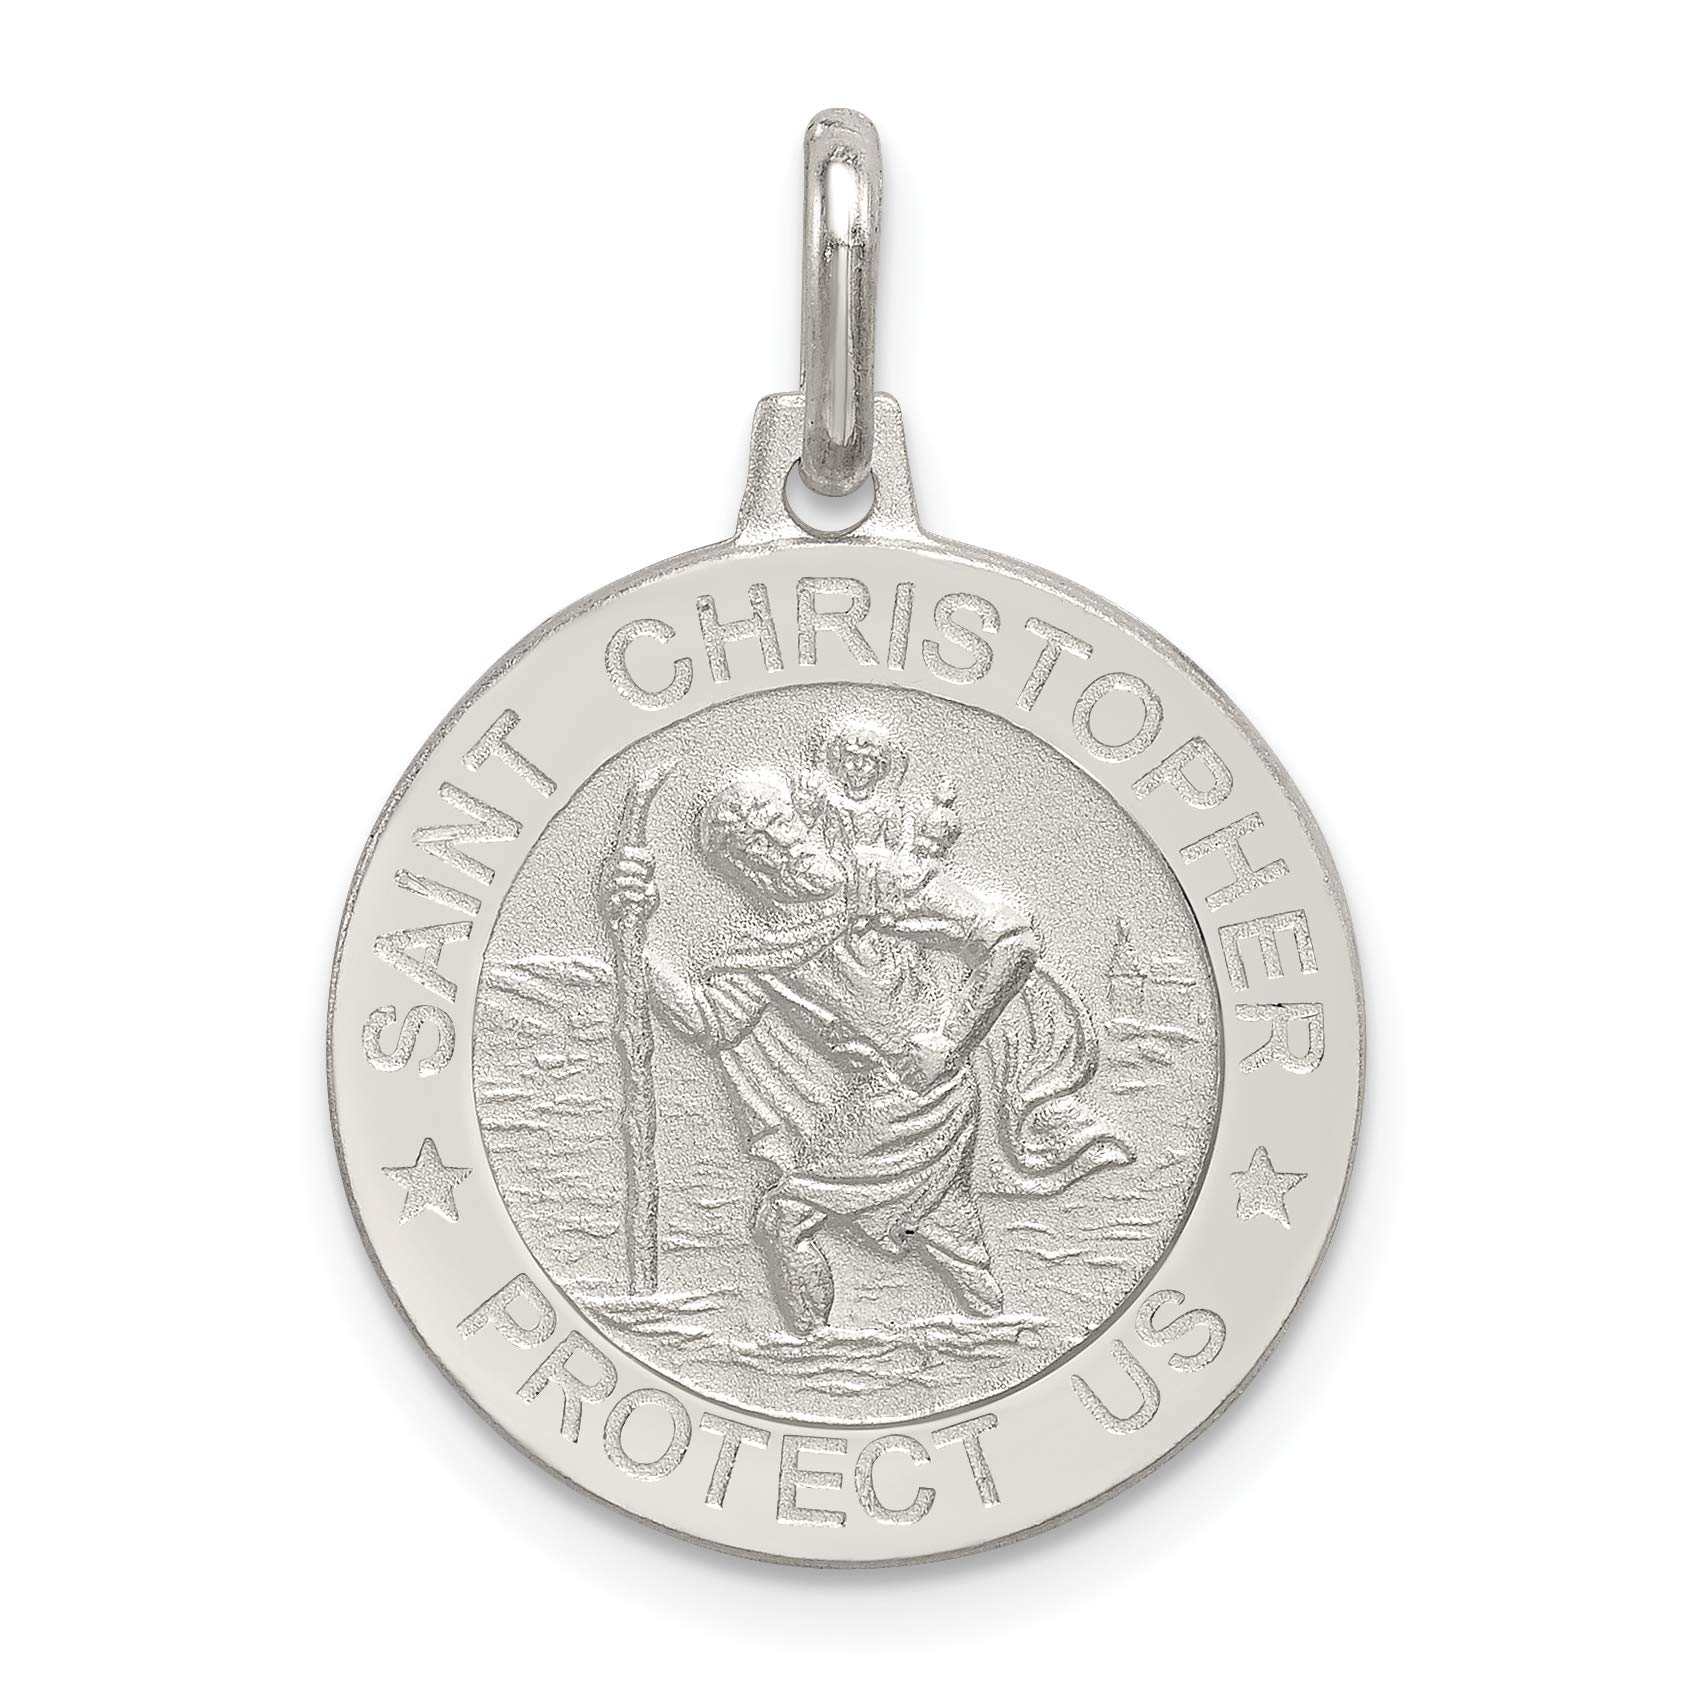 Round Solid Saint Christopher Protect Us Words On Nickel Size Disc Charm in 925 Sterling Silver 27x20mm